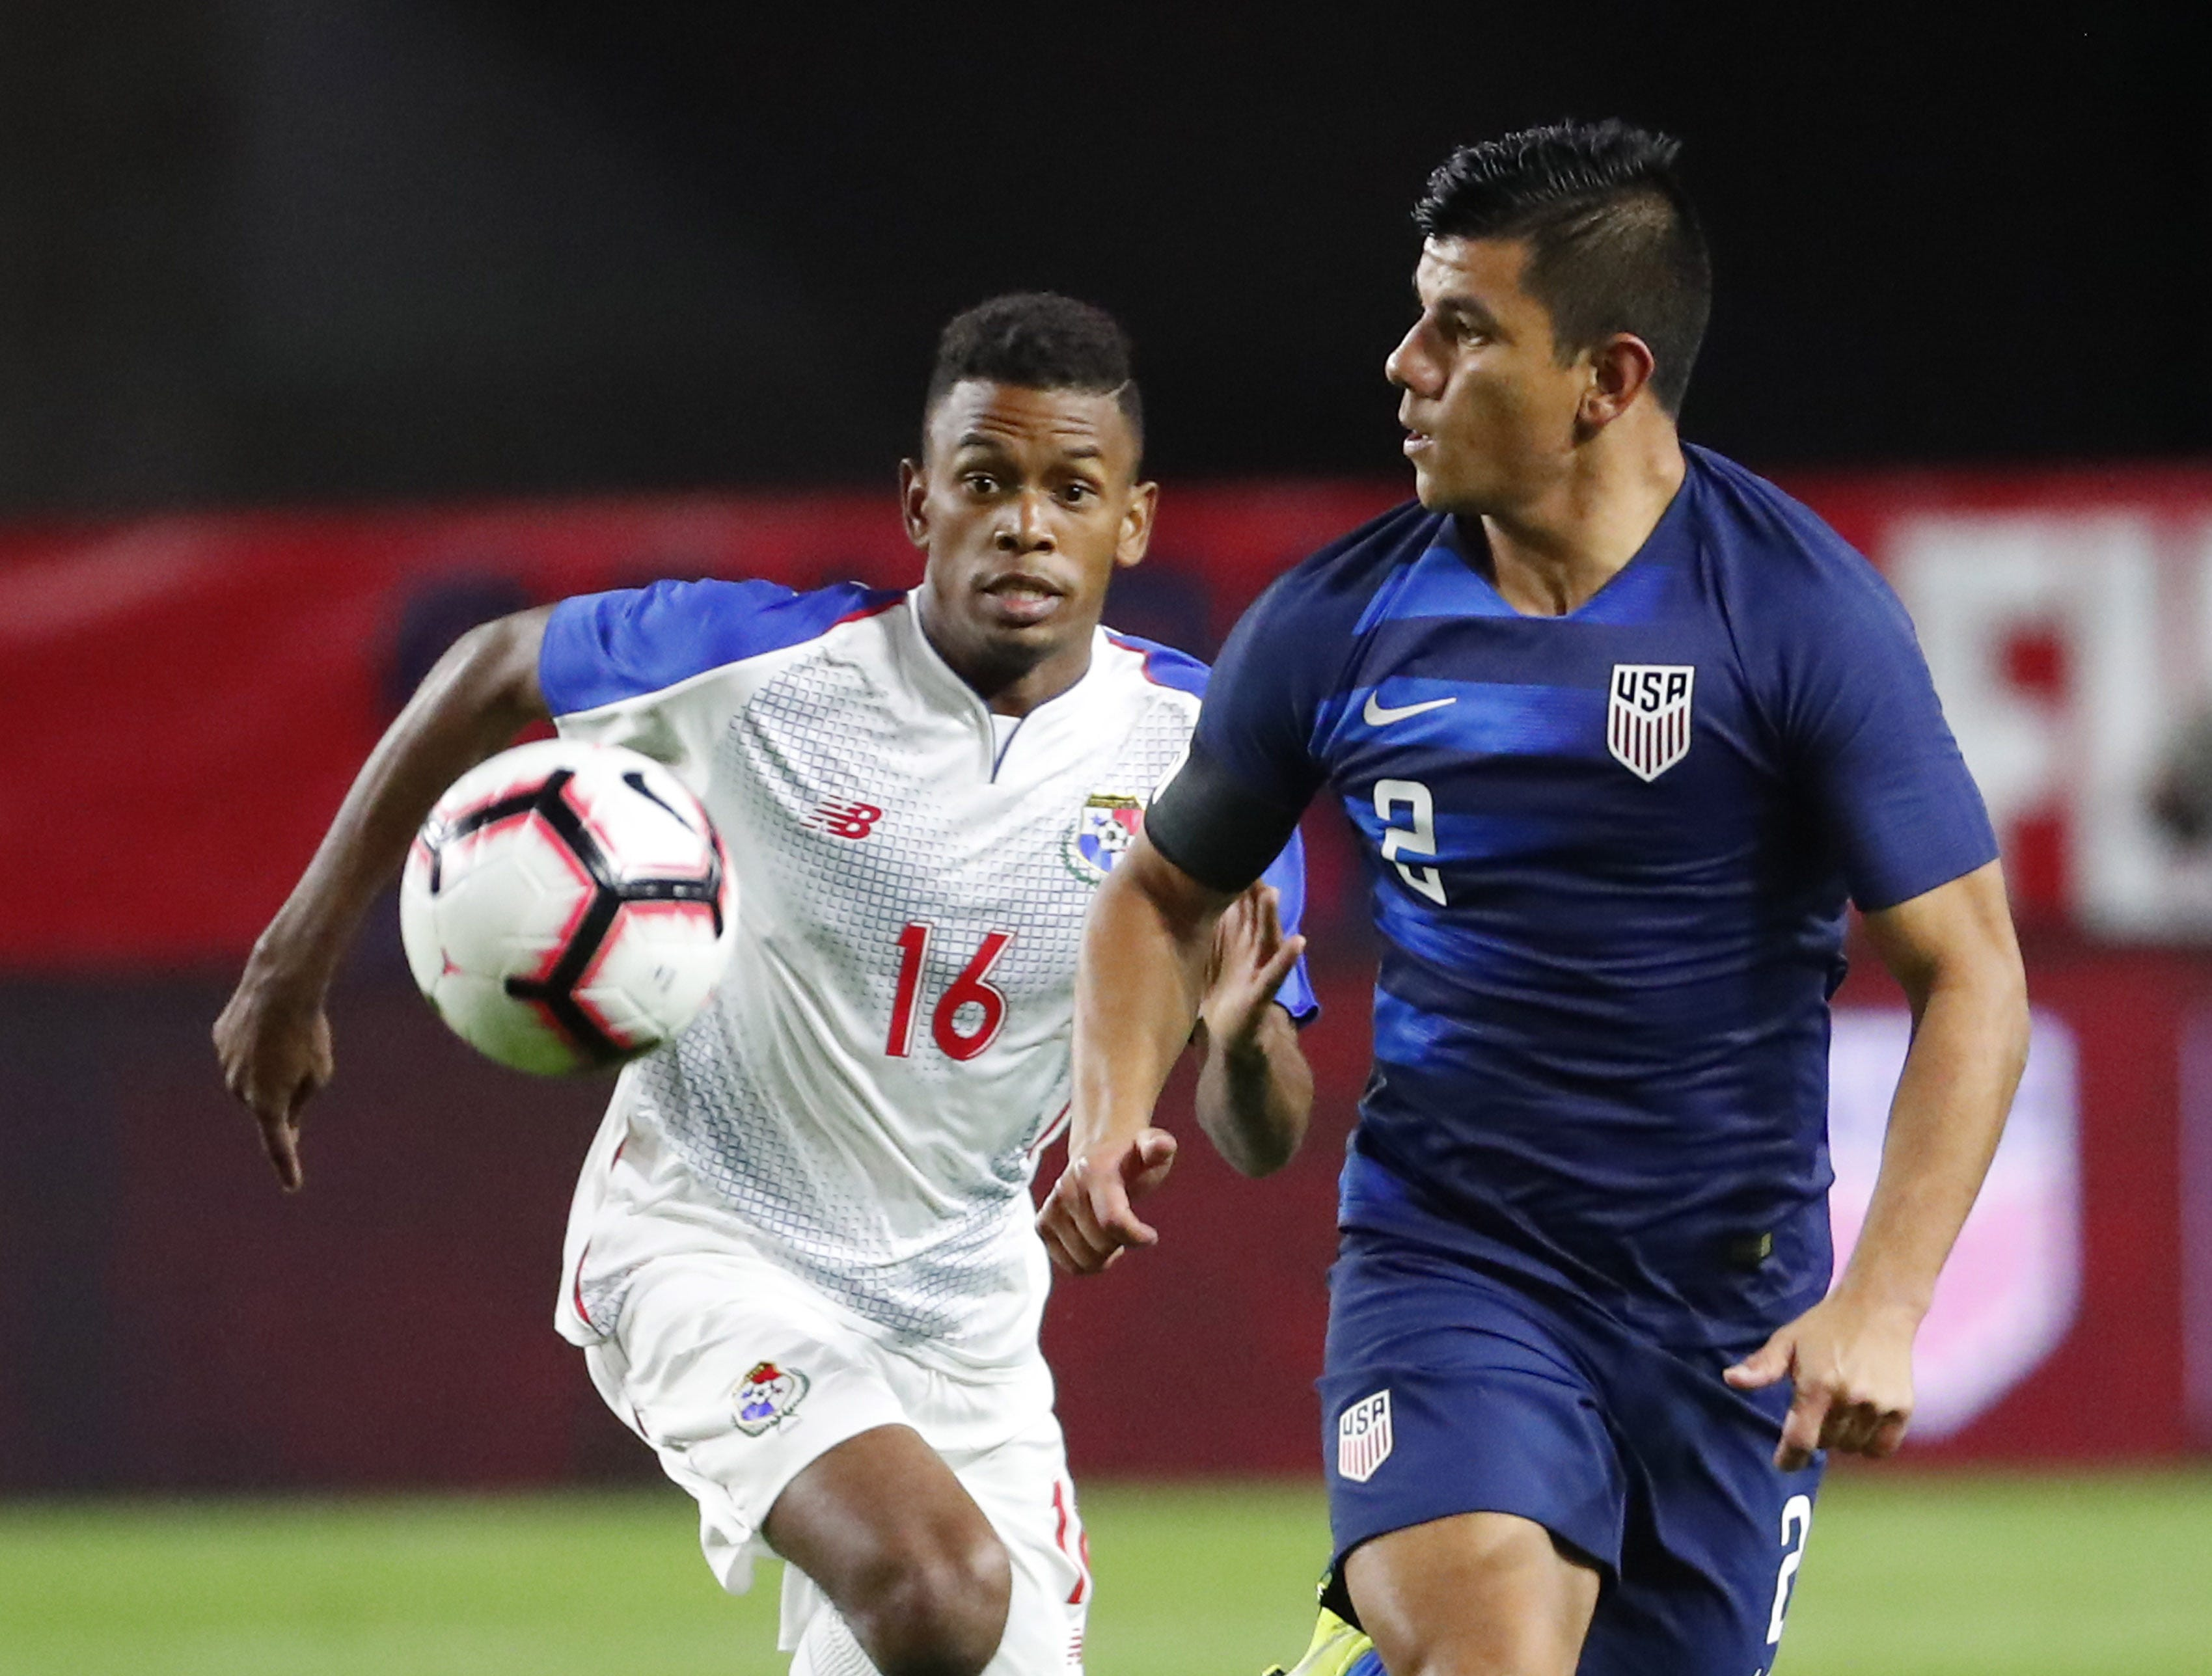 U.S. defender Nick Lima (2) chases the ball down while defended by Panama midfielder Edson Samms (16) during the second half of a friendly on Jan. 27, 2019 in Glendale, Ariz. The U.S. won 3-0.